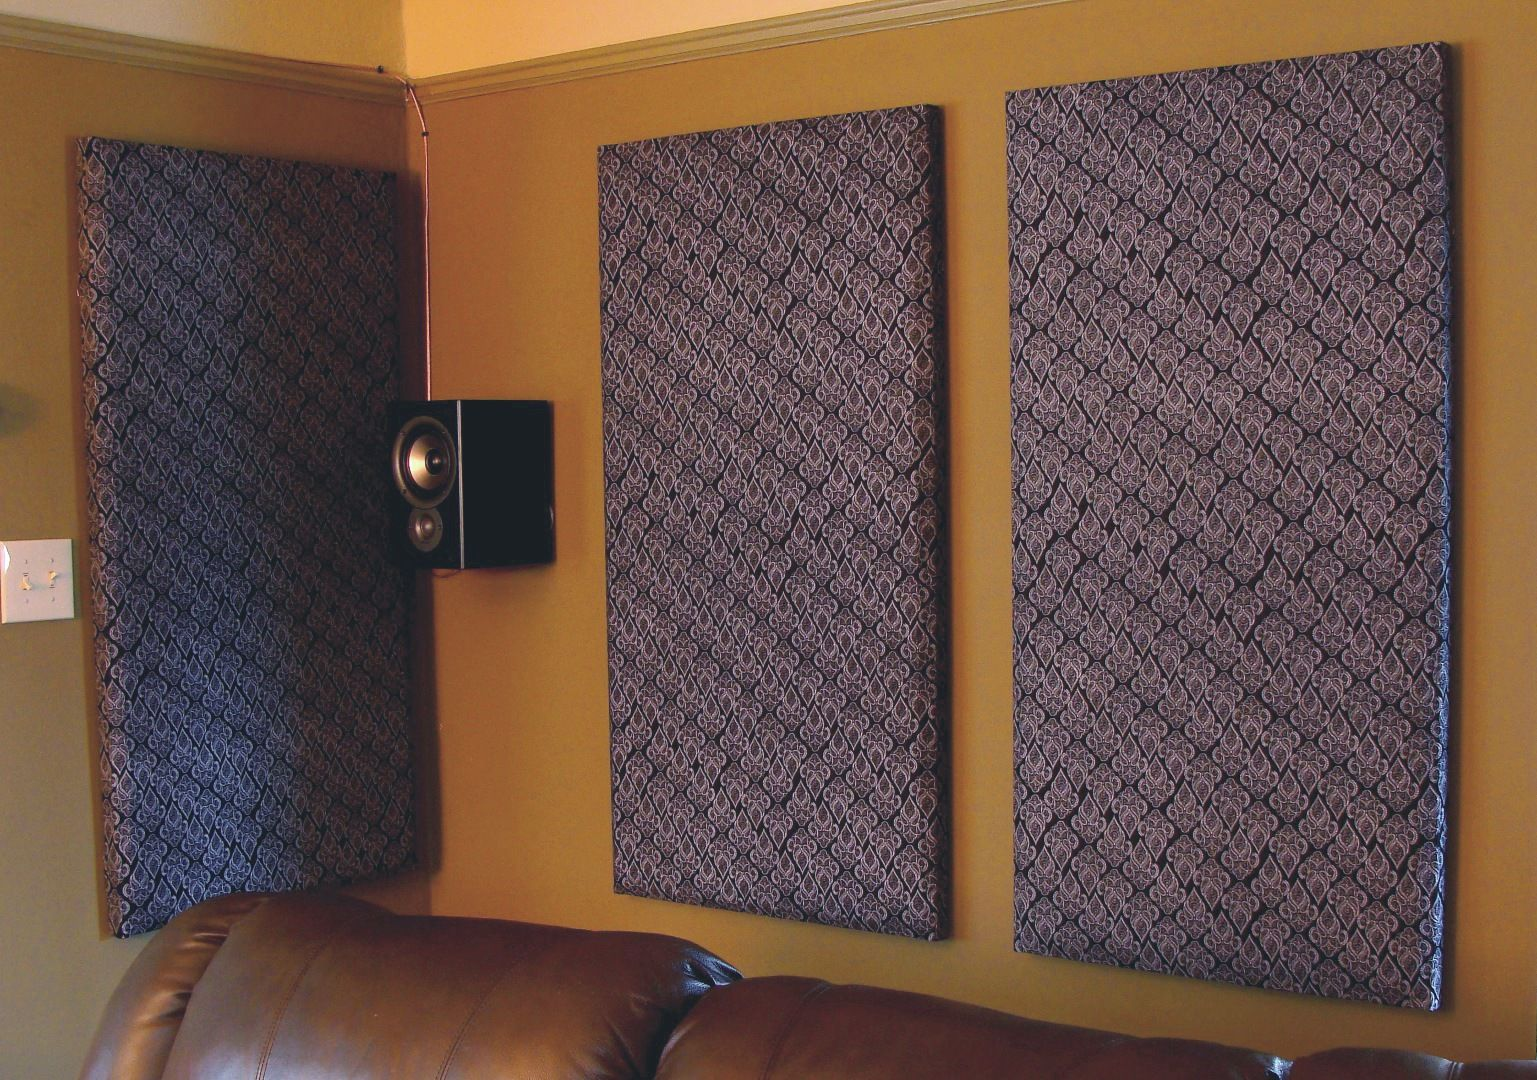 soundproof panels sound proofing acoustic panels home theaters studio